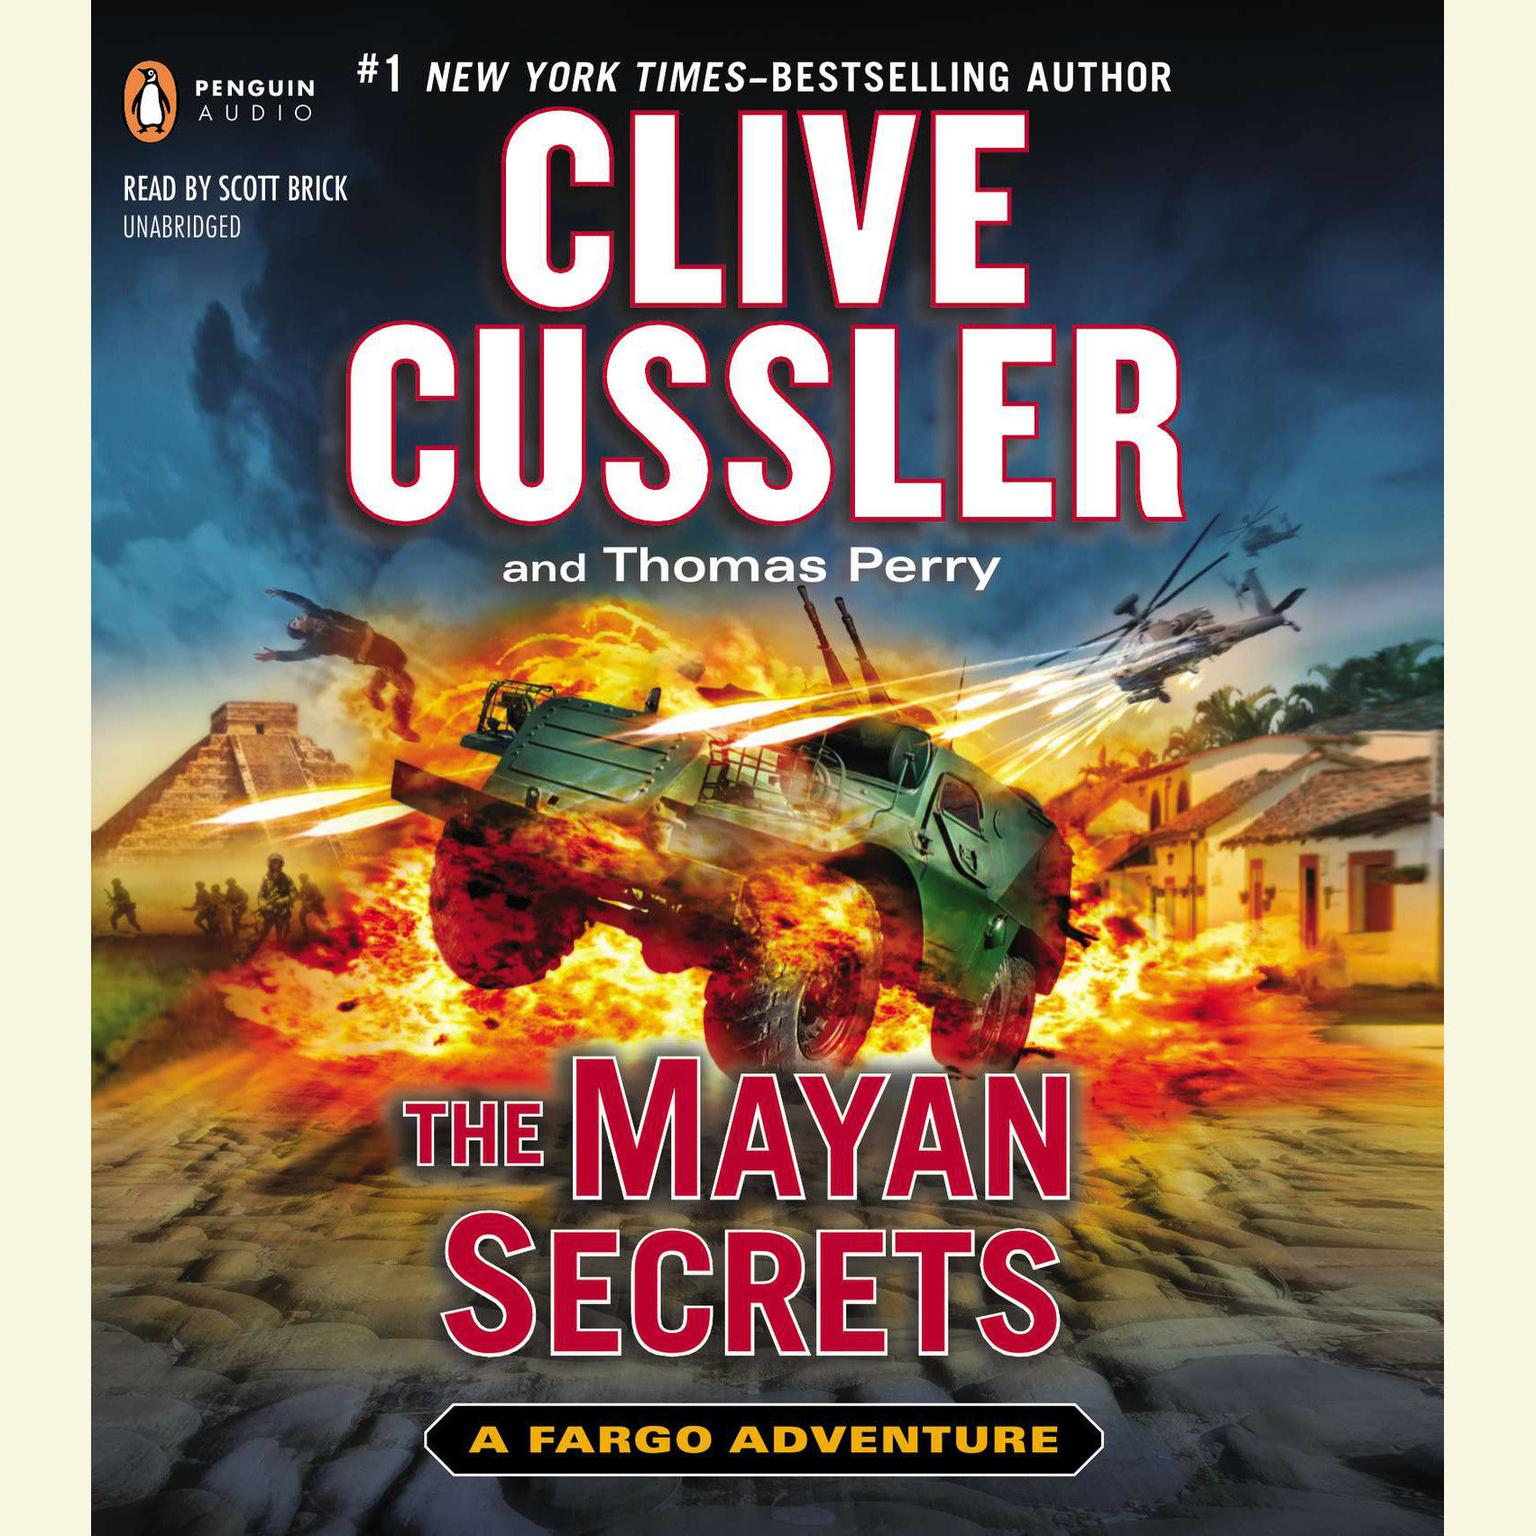 Printable The Mayan Secrets Audiobook Cover Art